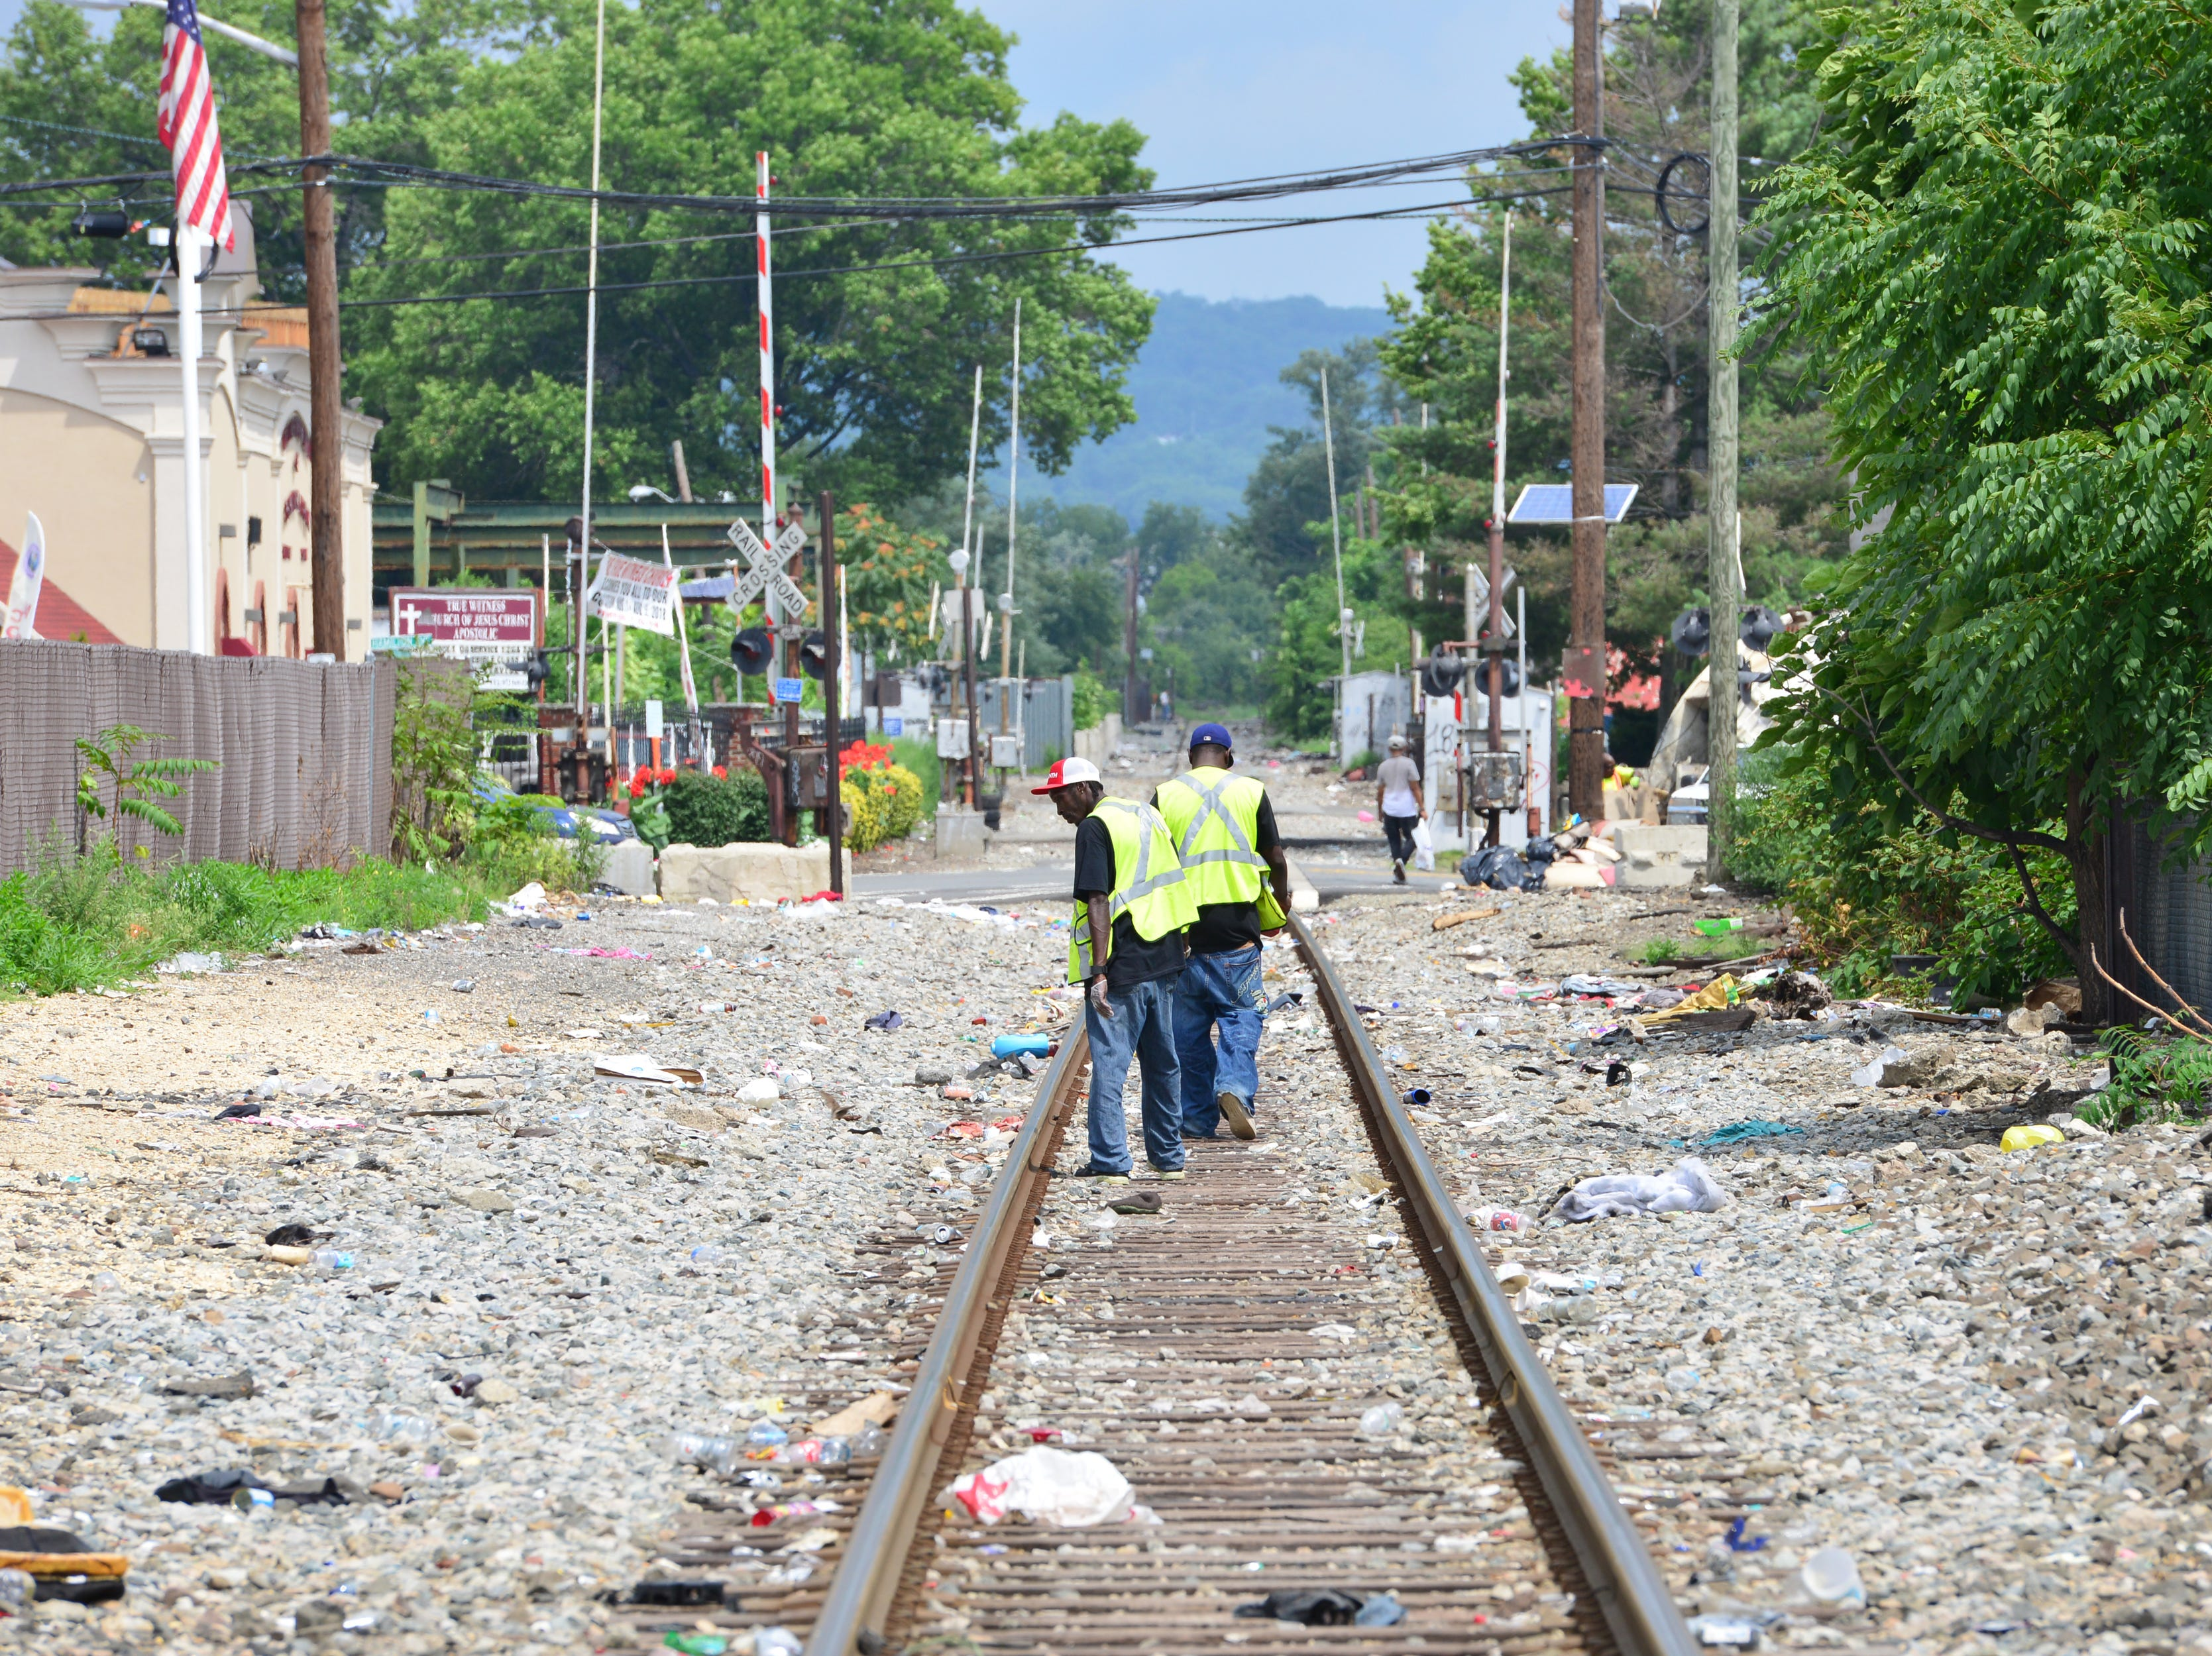 Outreach Workers of Hyacinth Foundation, walk along the railroad tracks in Paterson collecting syringes found on the ground. A van parked in the Walgreen's parking lot provides clean needles in exchange for dirty ones twice a week in Paterson on Friday July 27, 2018. For every used syringe brought in, the harm reduction specialists with Hyacinth Foundation provides a new sterile syringe. The van is stocked with syringes of different sizes, alcohol wipes, constriction bands, cooking cups, water, strips to test for fentanyl, and other products to safely inject heroin.